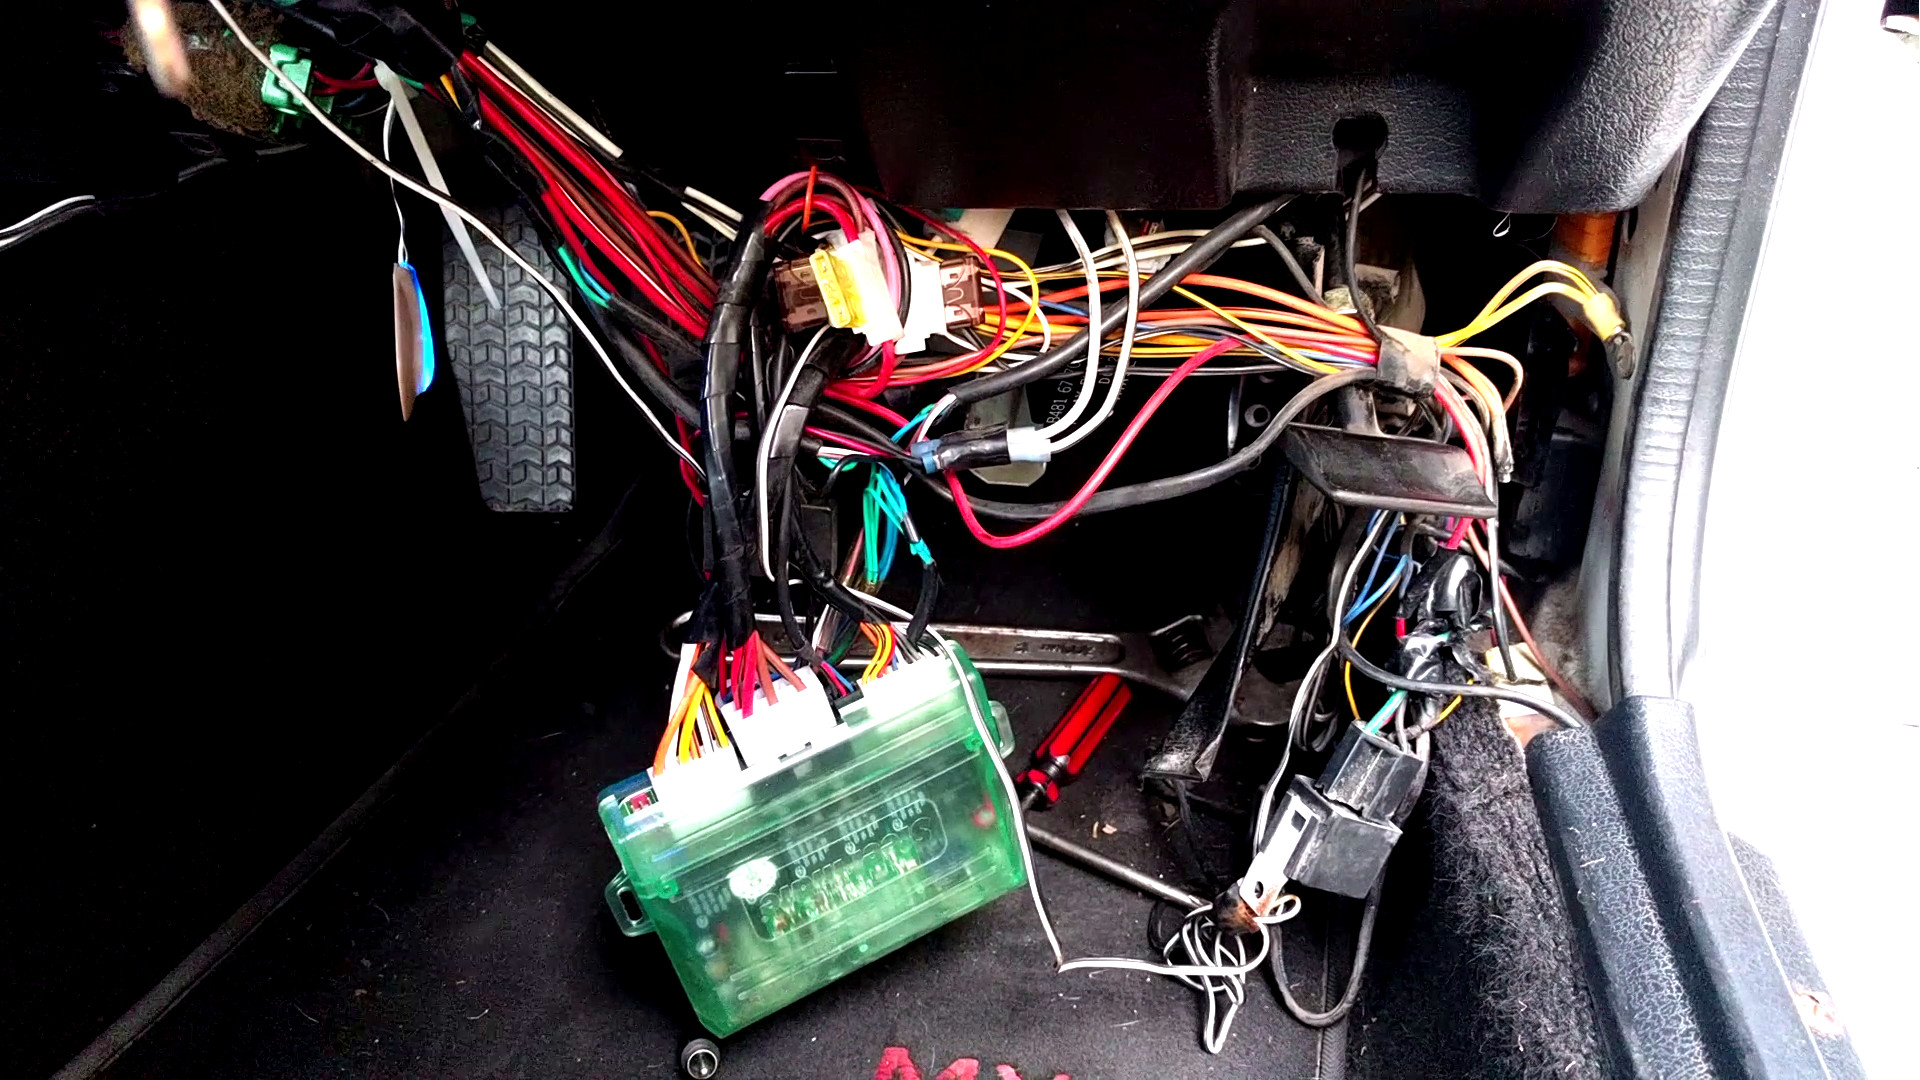 the bane of aftermarket car alarms hackaday 21circuit pro street wiring harness for streetlegal race cars jegs [ 1920 x 1080 Pixel ]